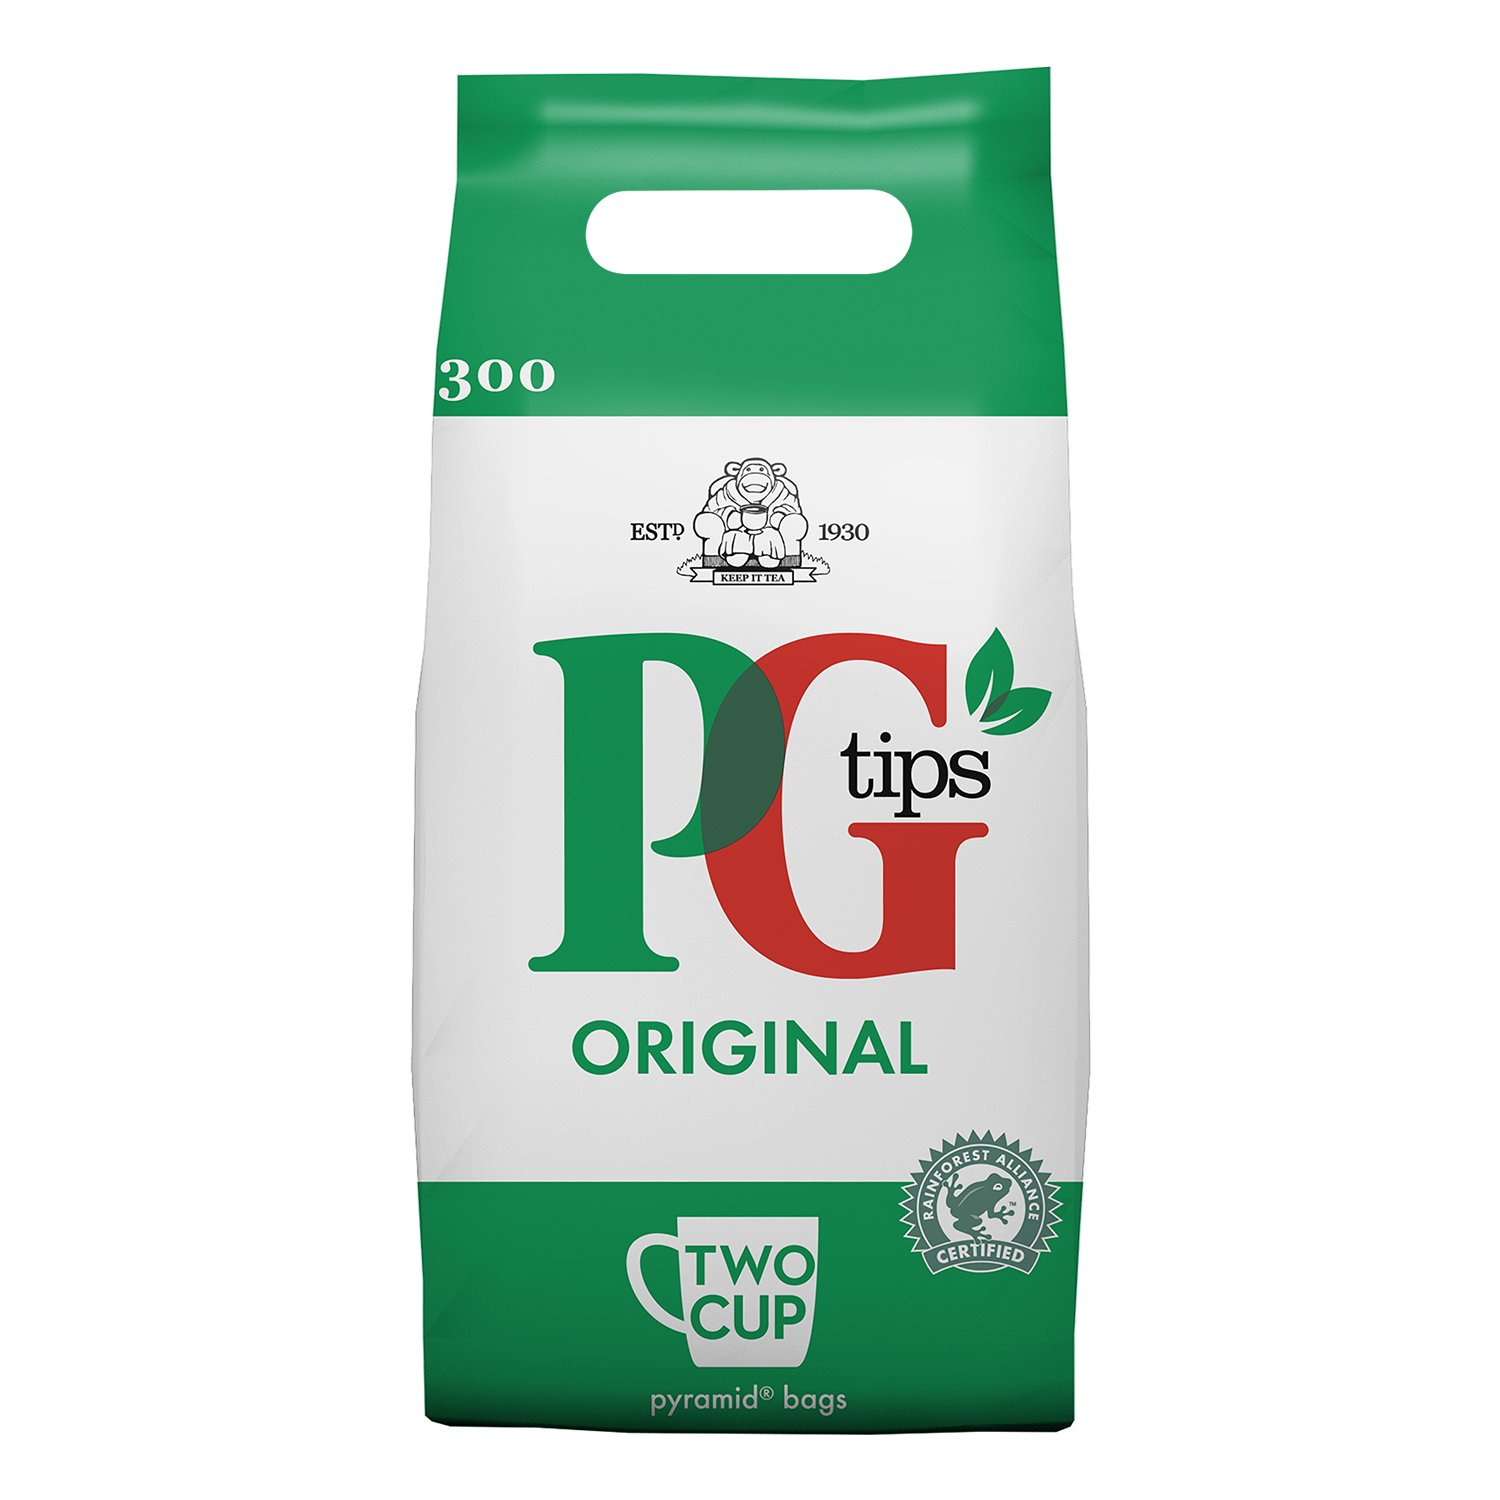 PG Tips Tea Bags 2 Cup 750G - 300 Tea Bags (Pack Of 8)